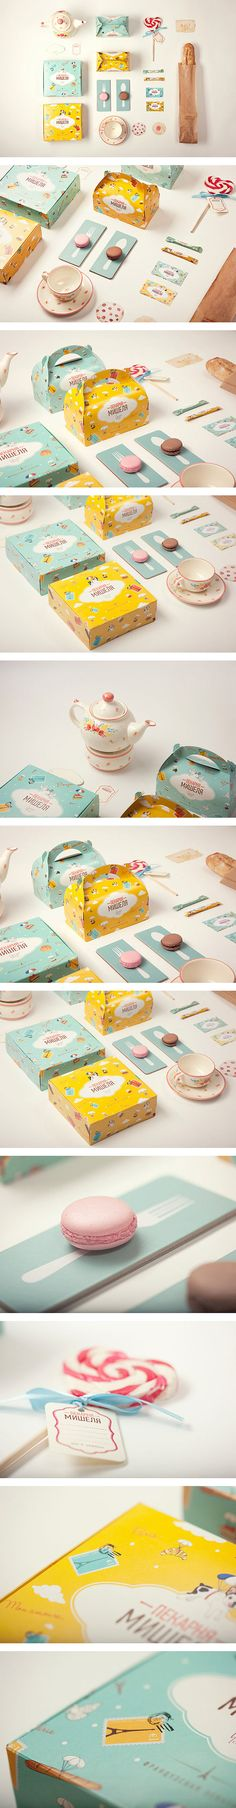 michelle bakery packaging | g-sign